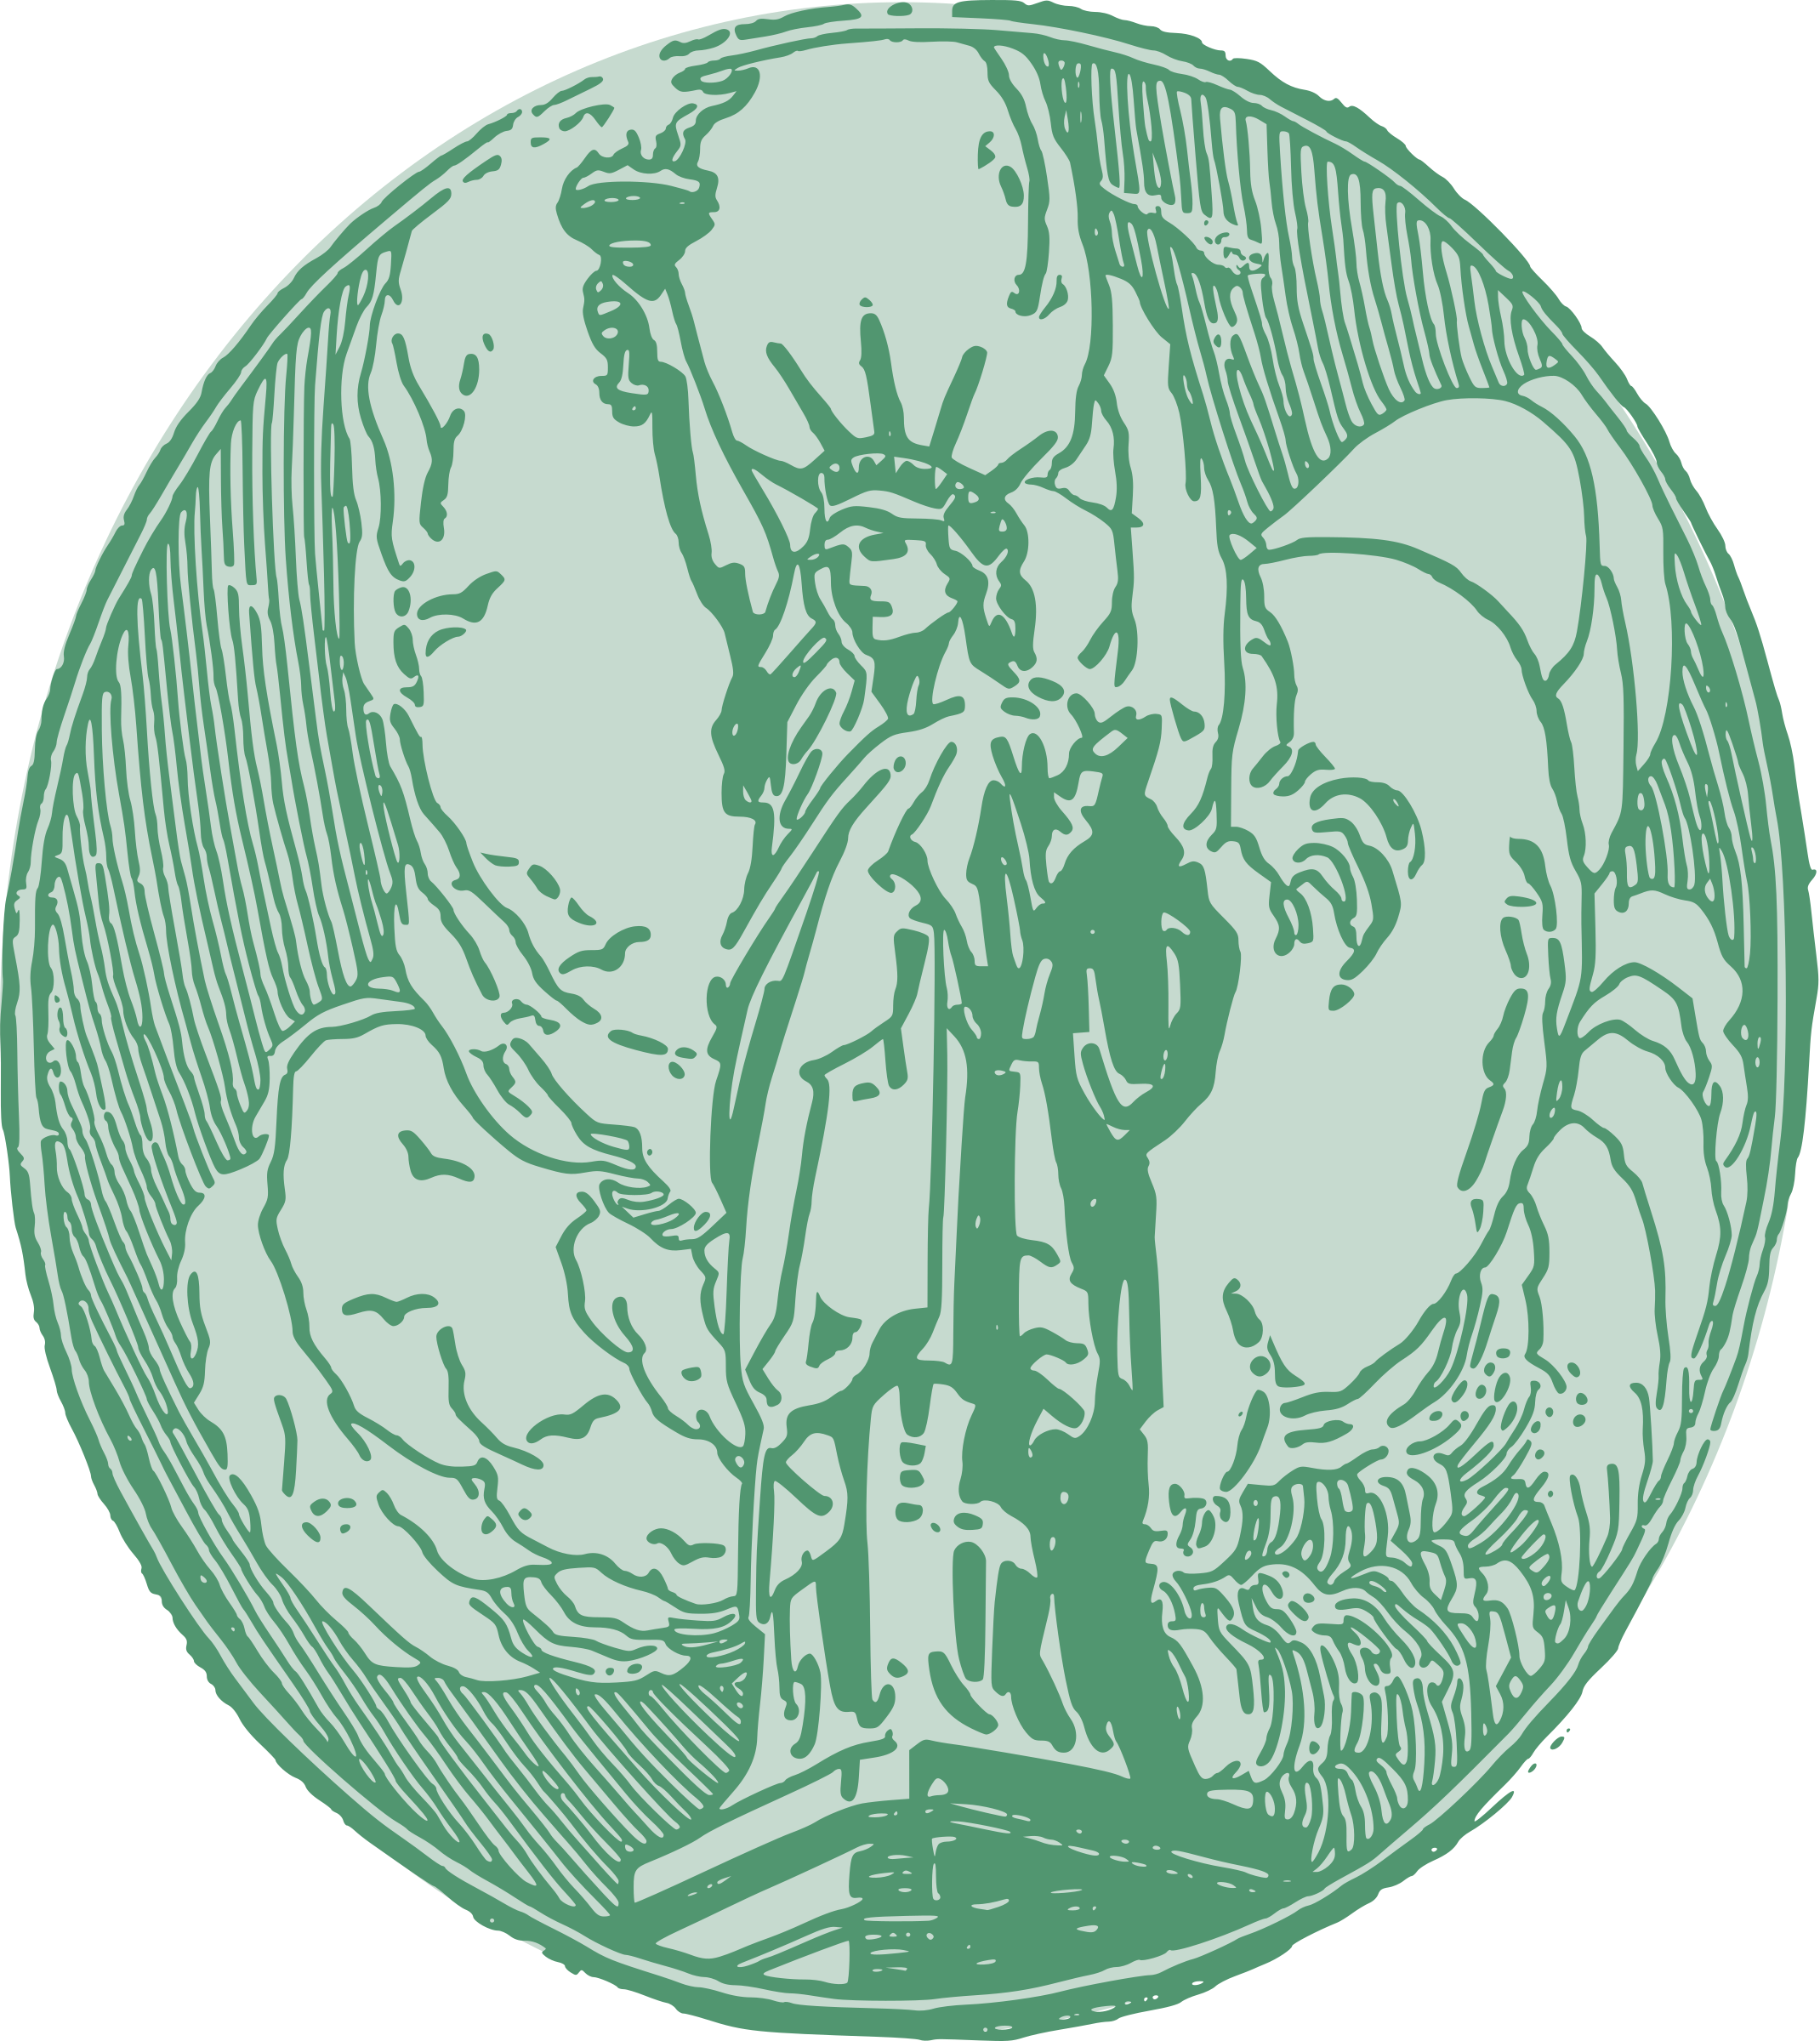 Statue of Liberty Circle by j4p4n